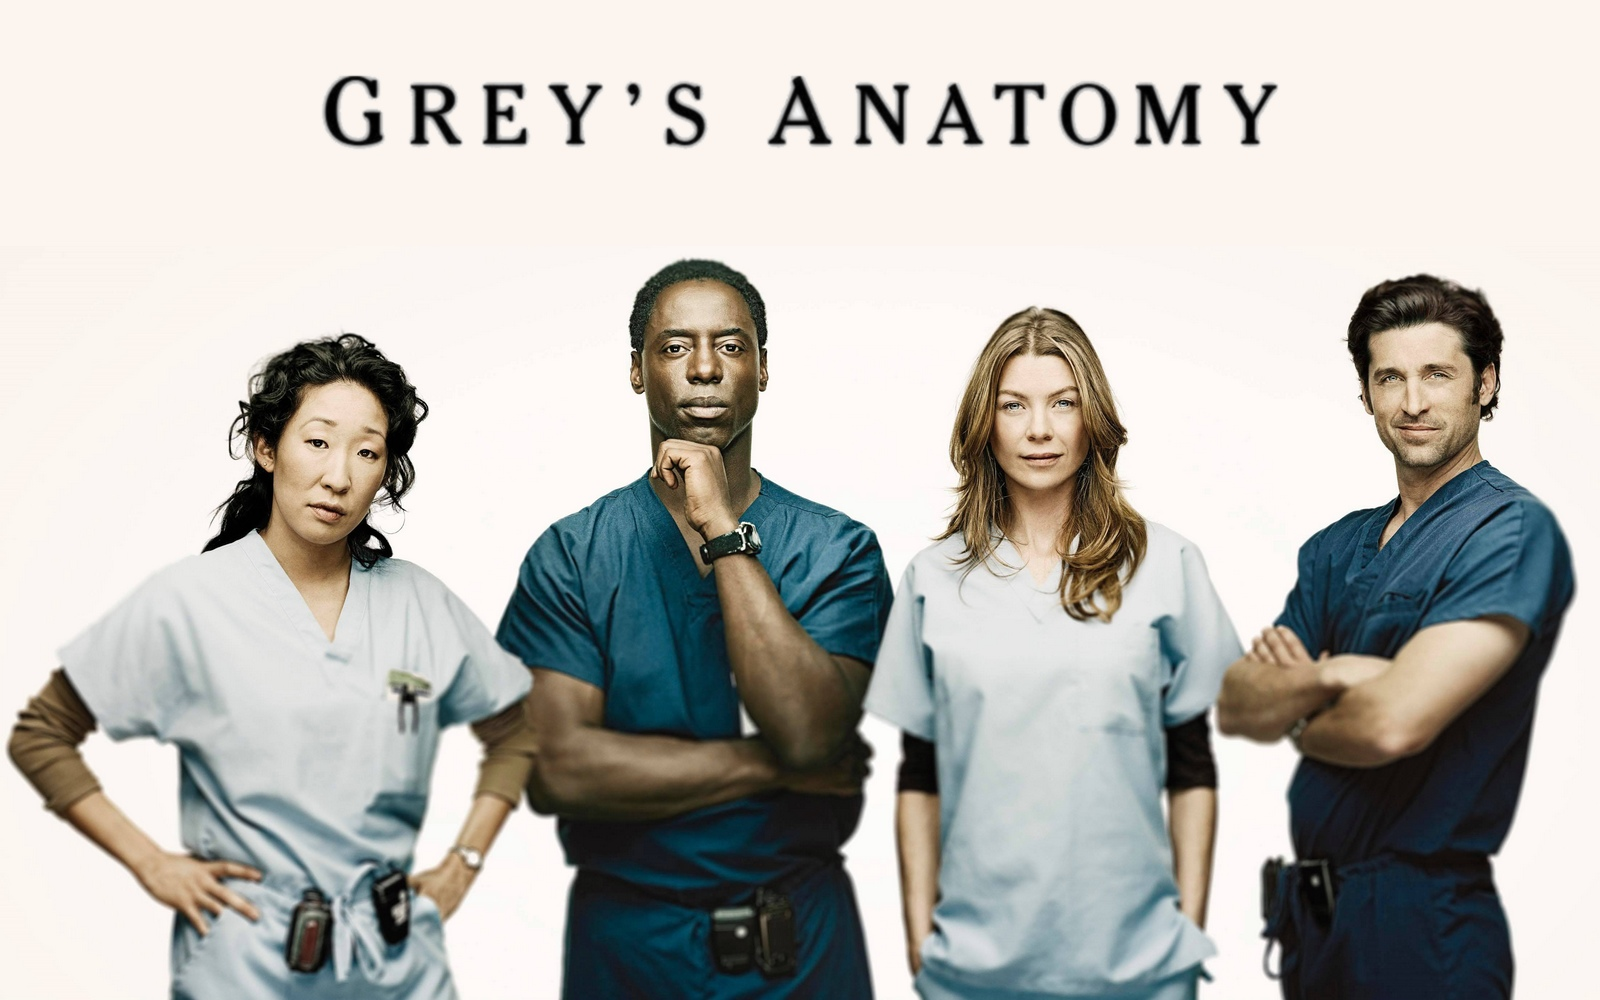 Greys anatomy 2005